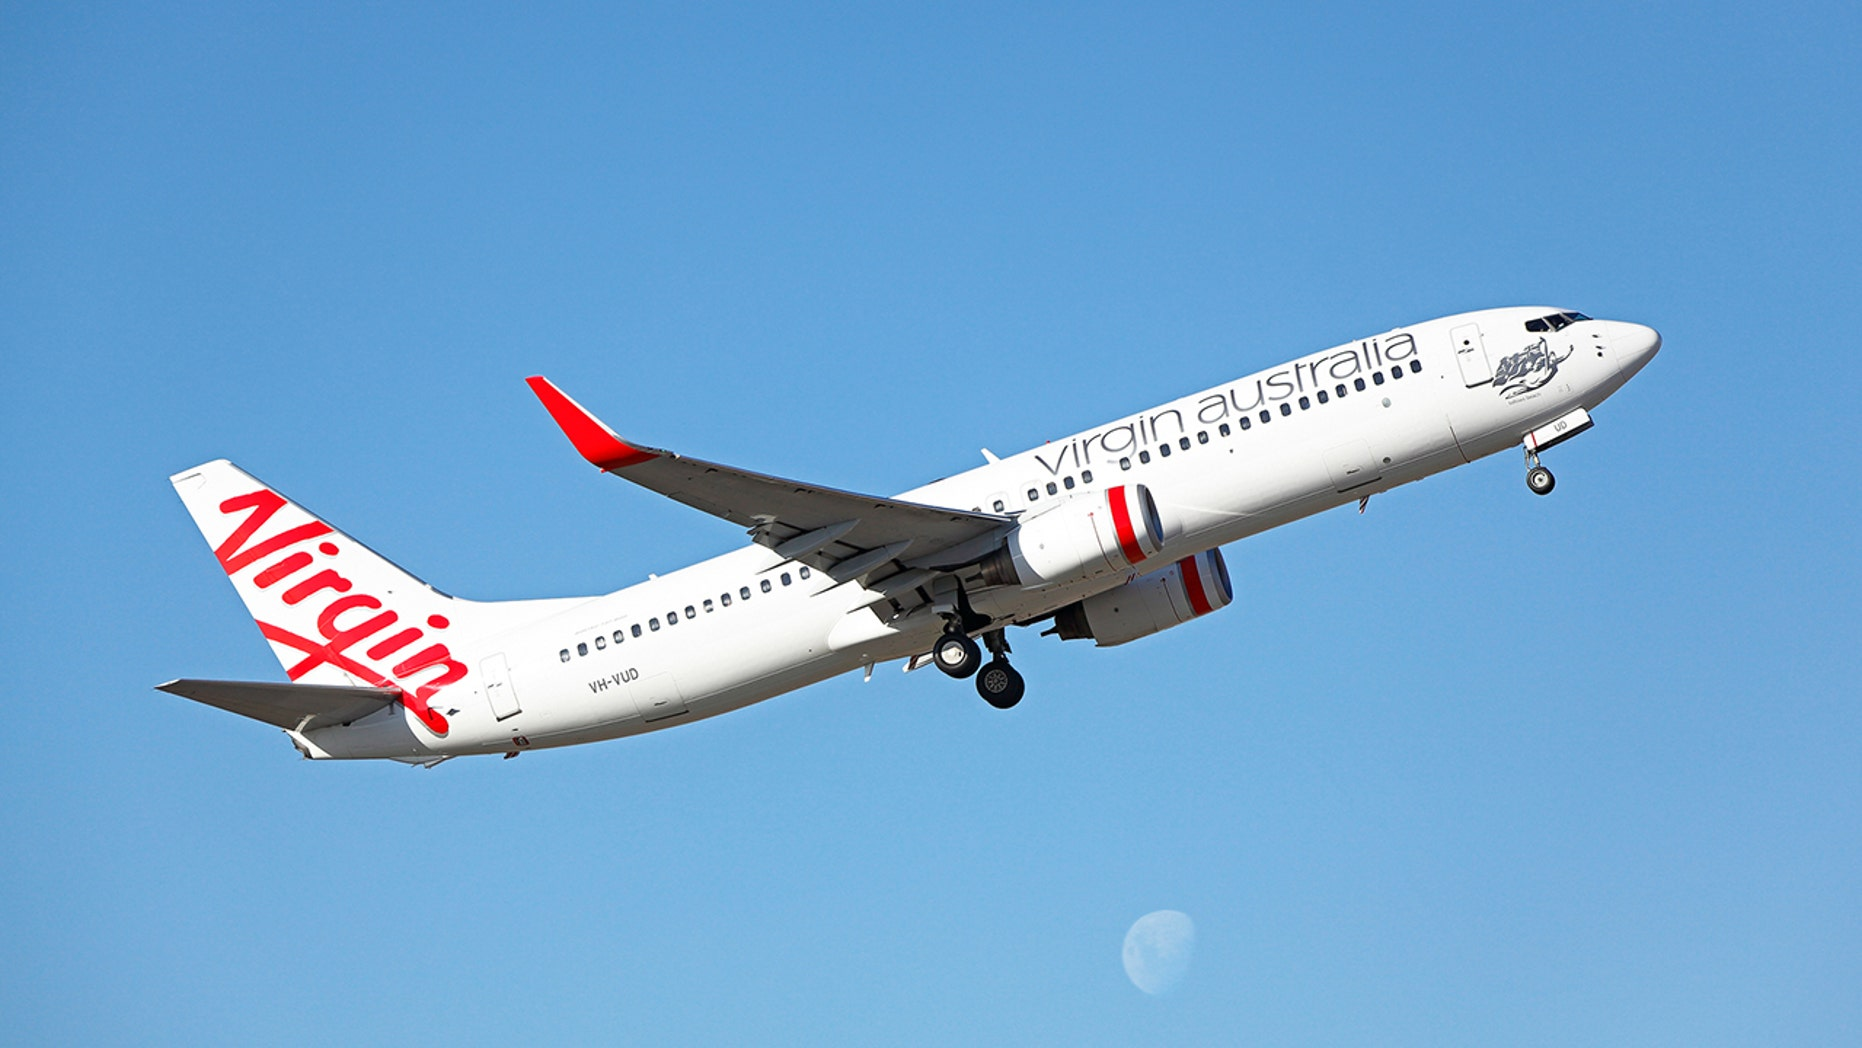 Those who have a fear of flying can now rest easier on flights withVirgin Australia.